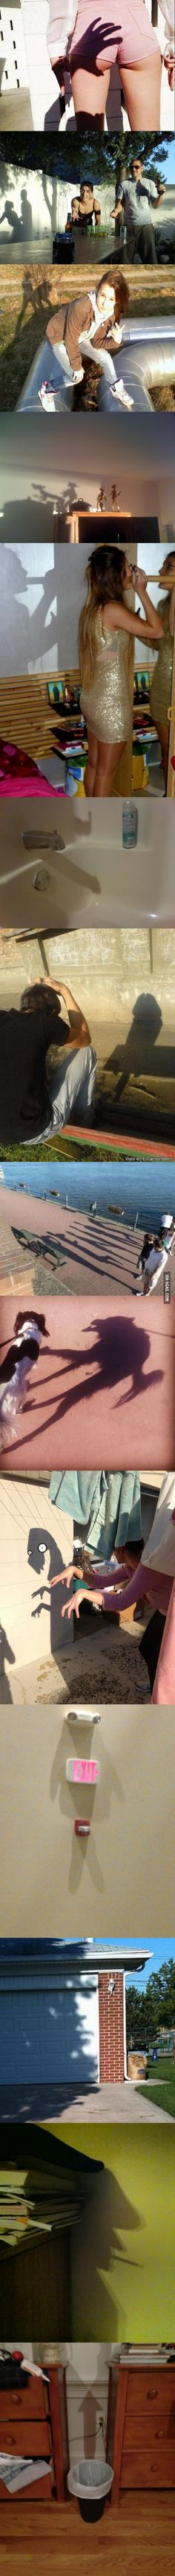 Sly Shadows...I can't stop laughing after seeing this.